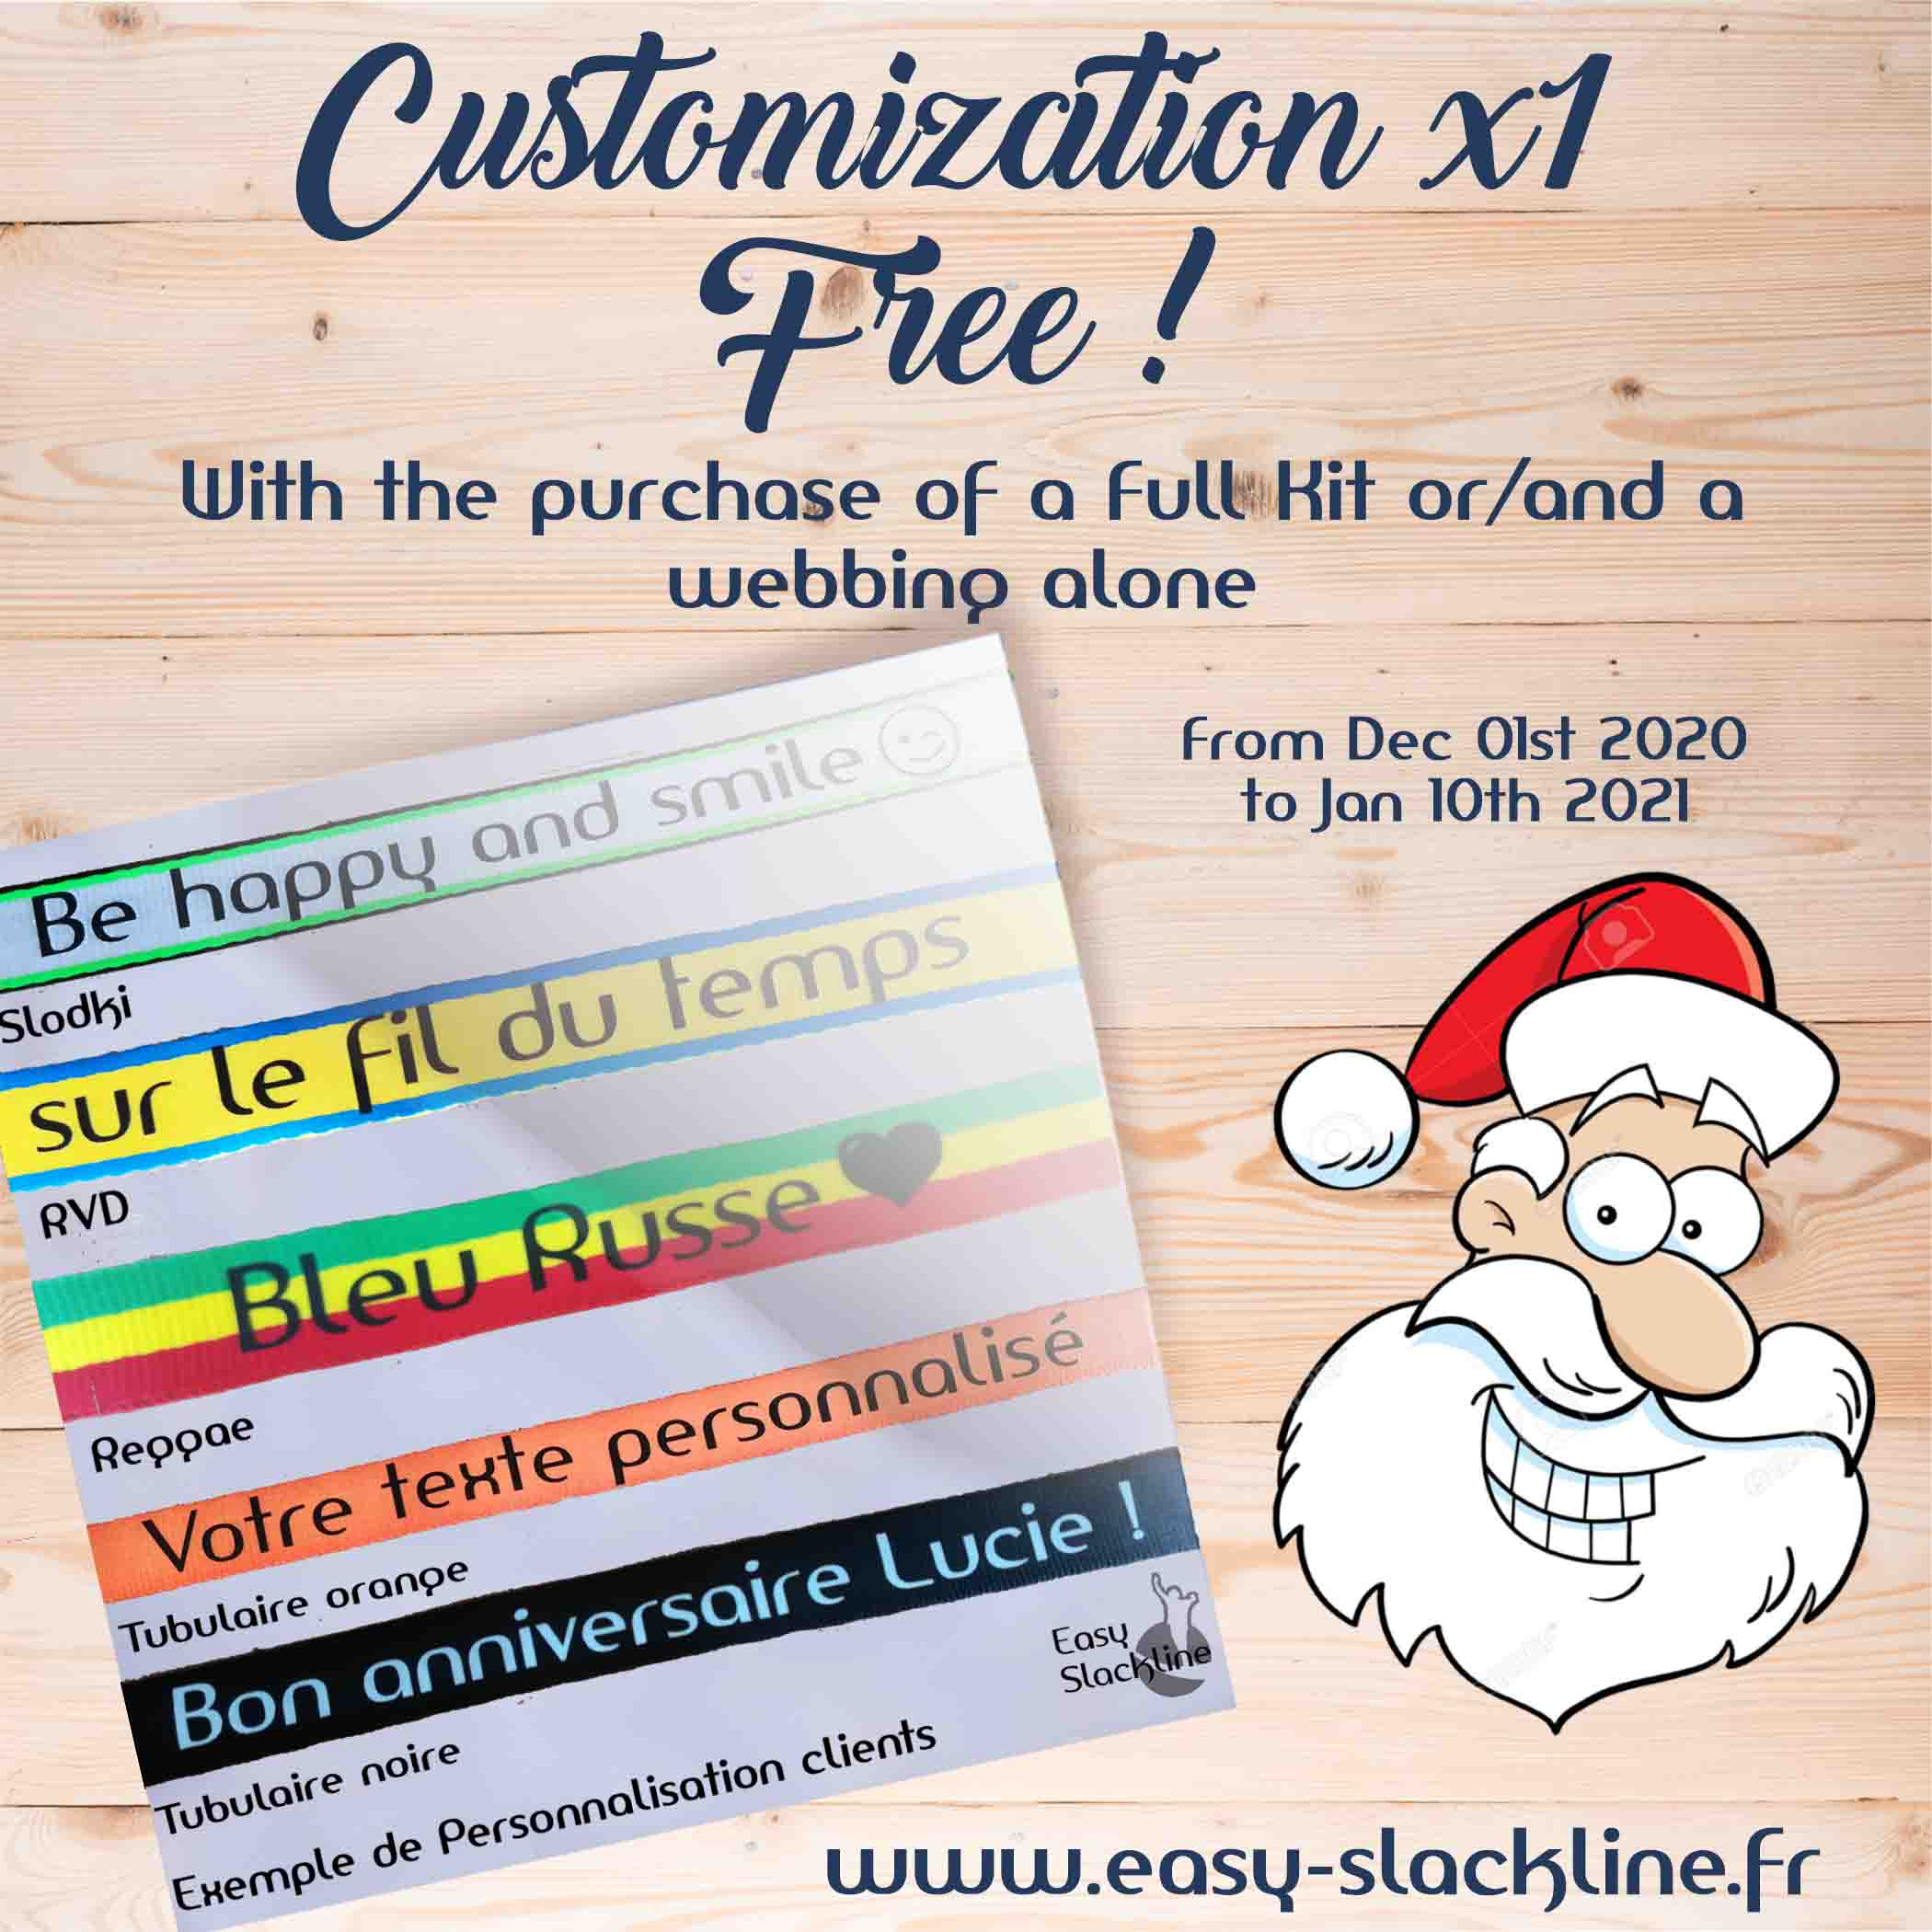 free customization easy slackline